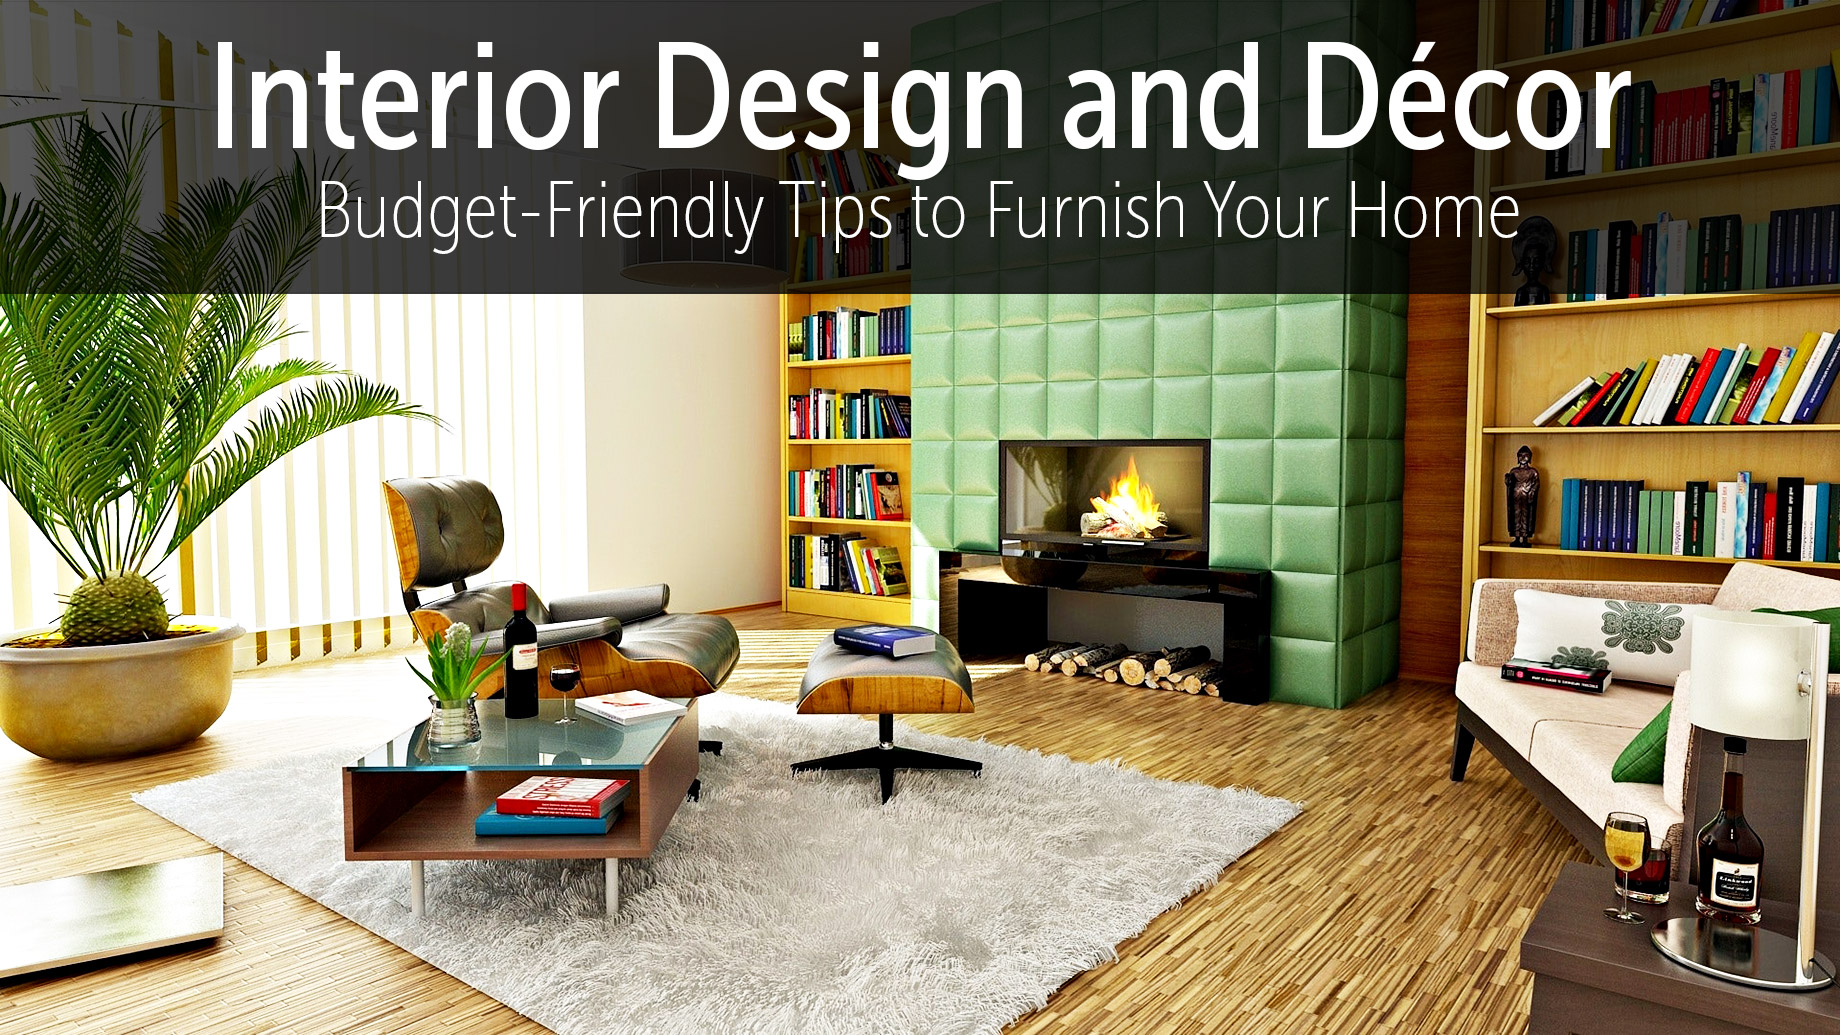 Interior Design and Décor - Budget-Friendly Tips to Furnish Your Home